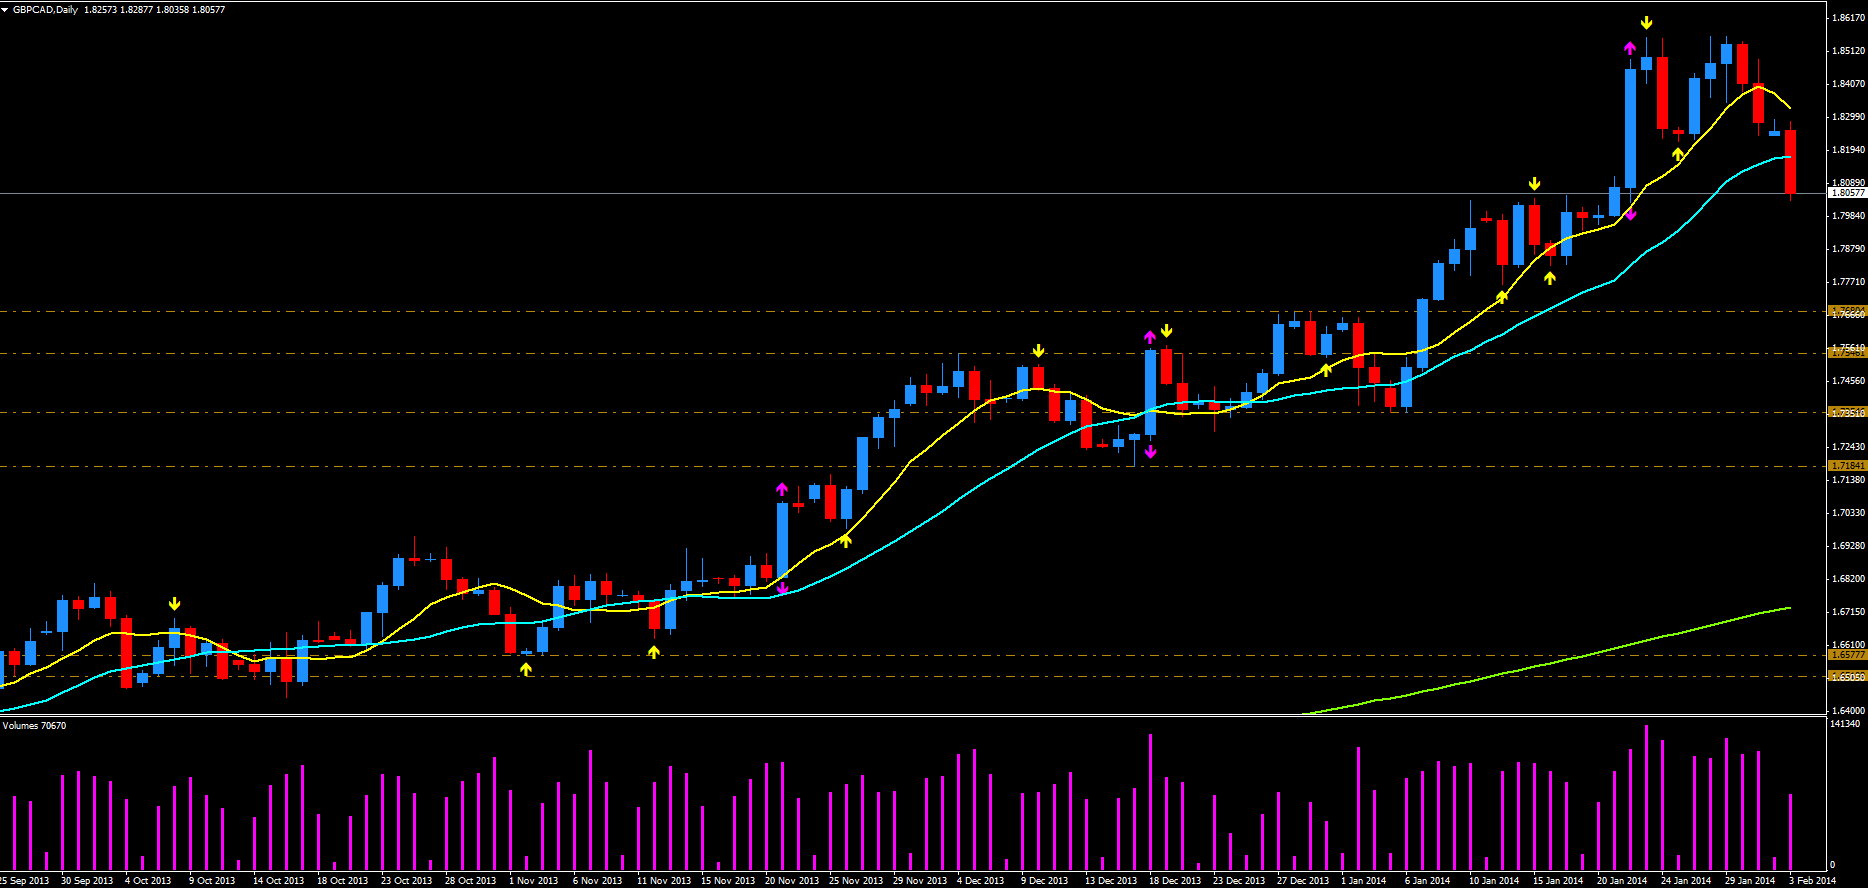 GBP/CAD daily chart